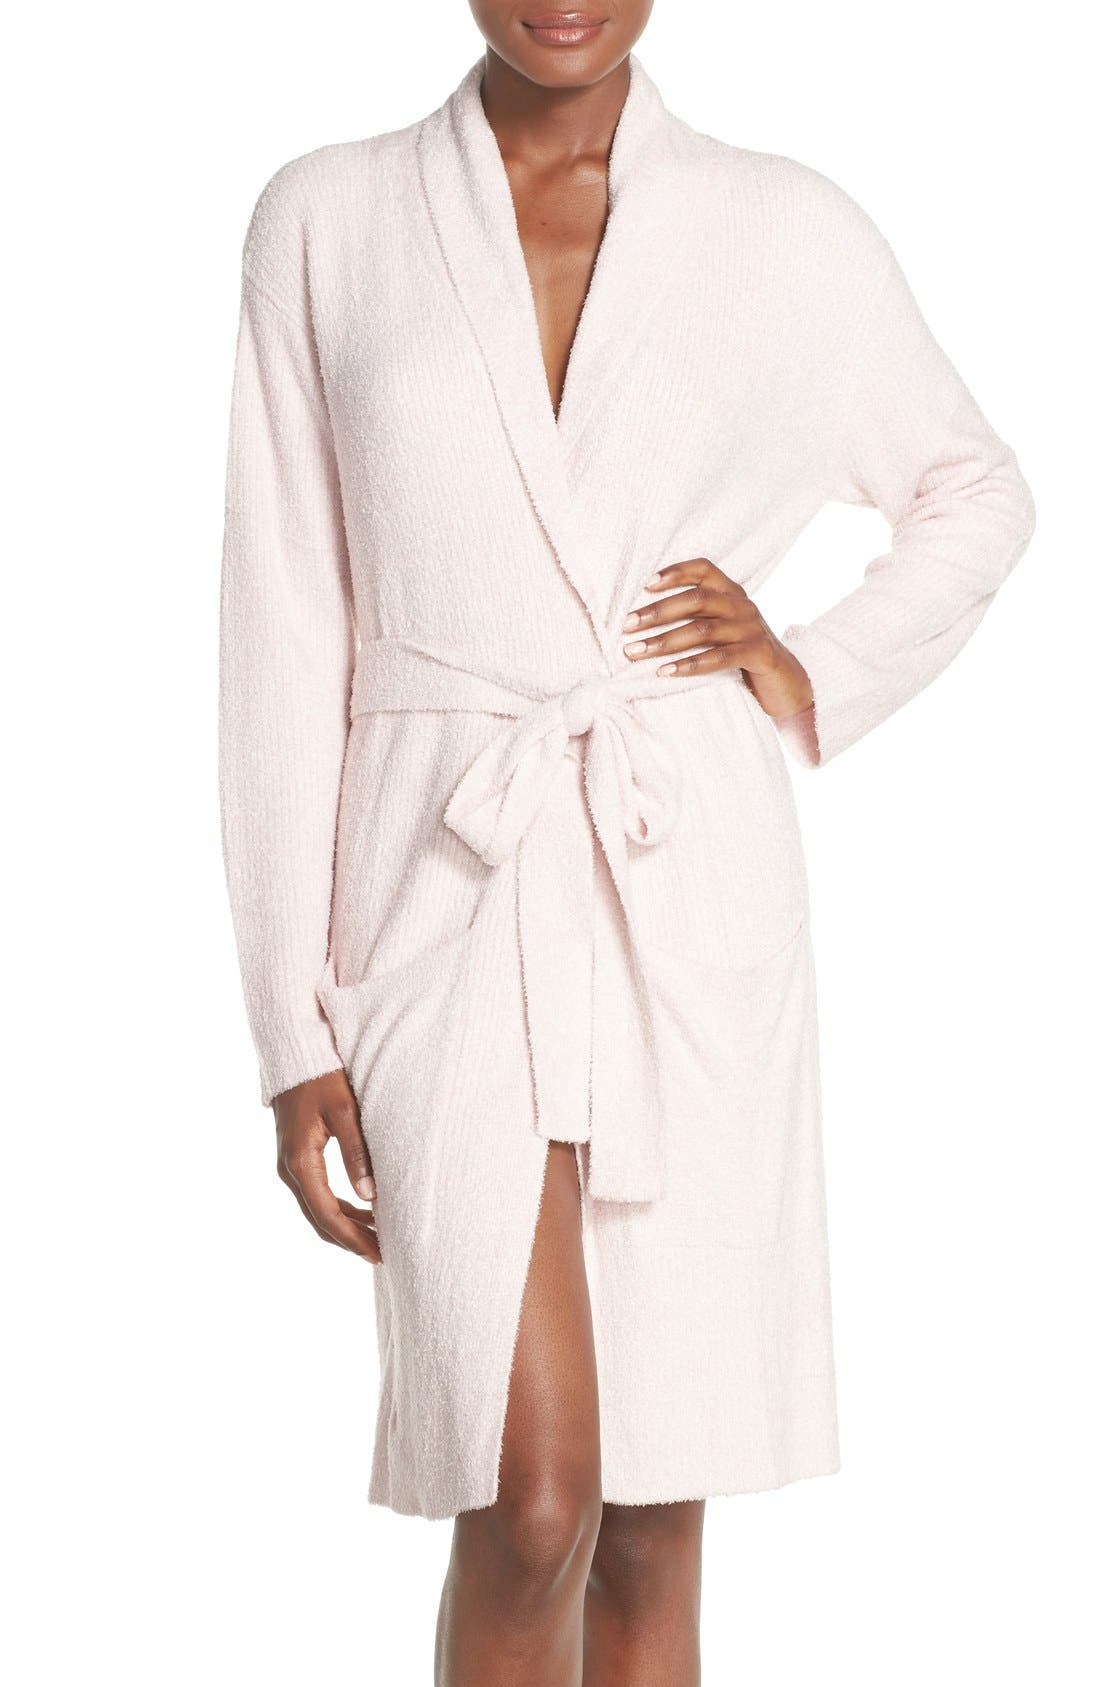 BAREFOOT DREAMS® Barefoot Dreams CozyChic Lite® Short Robe